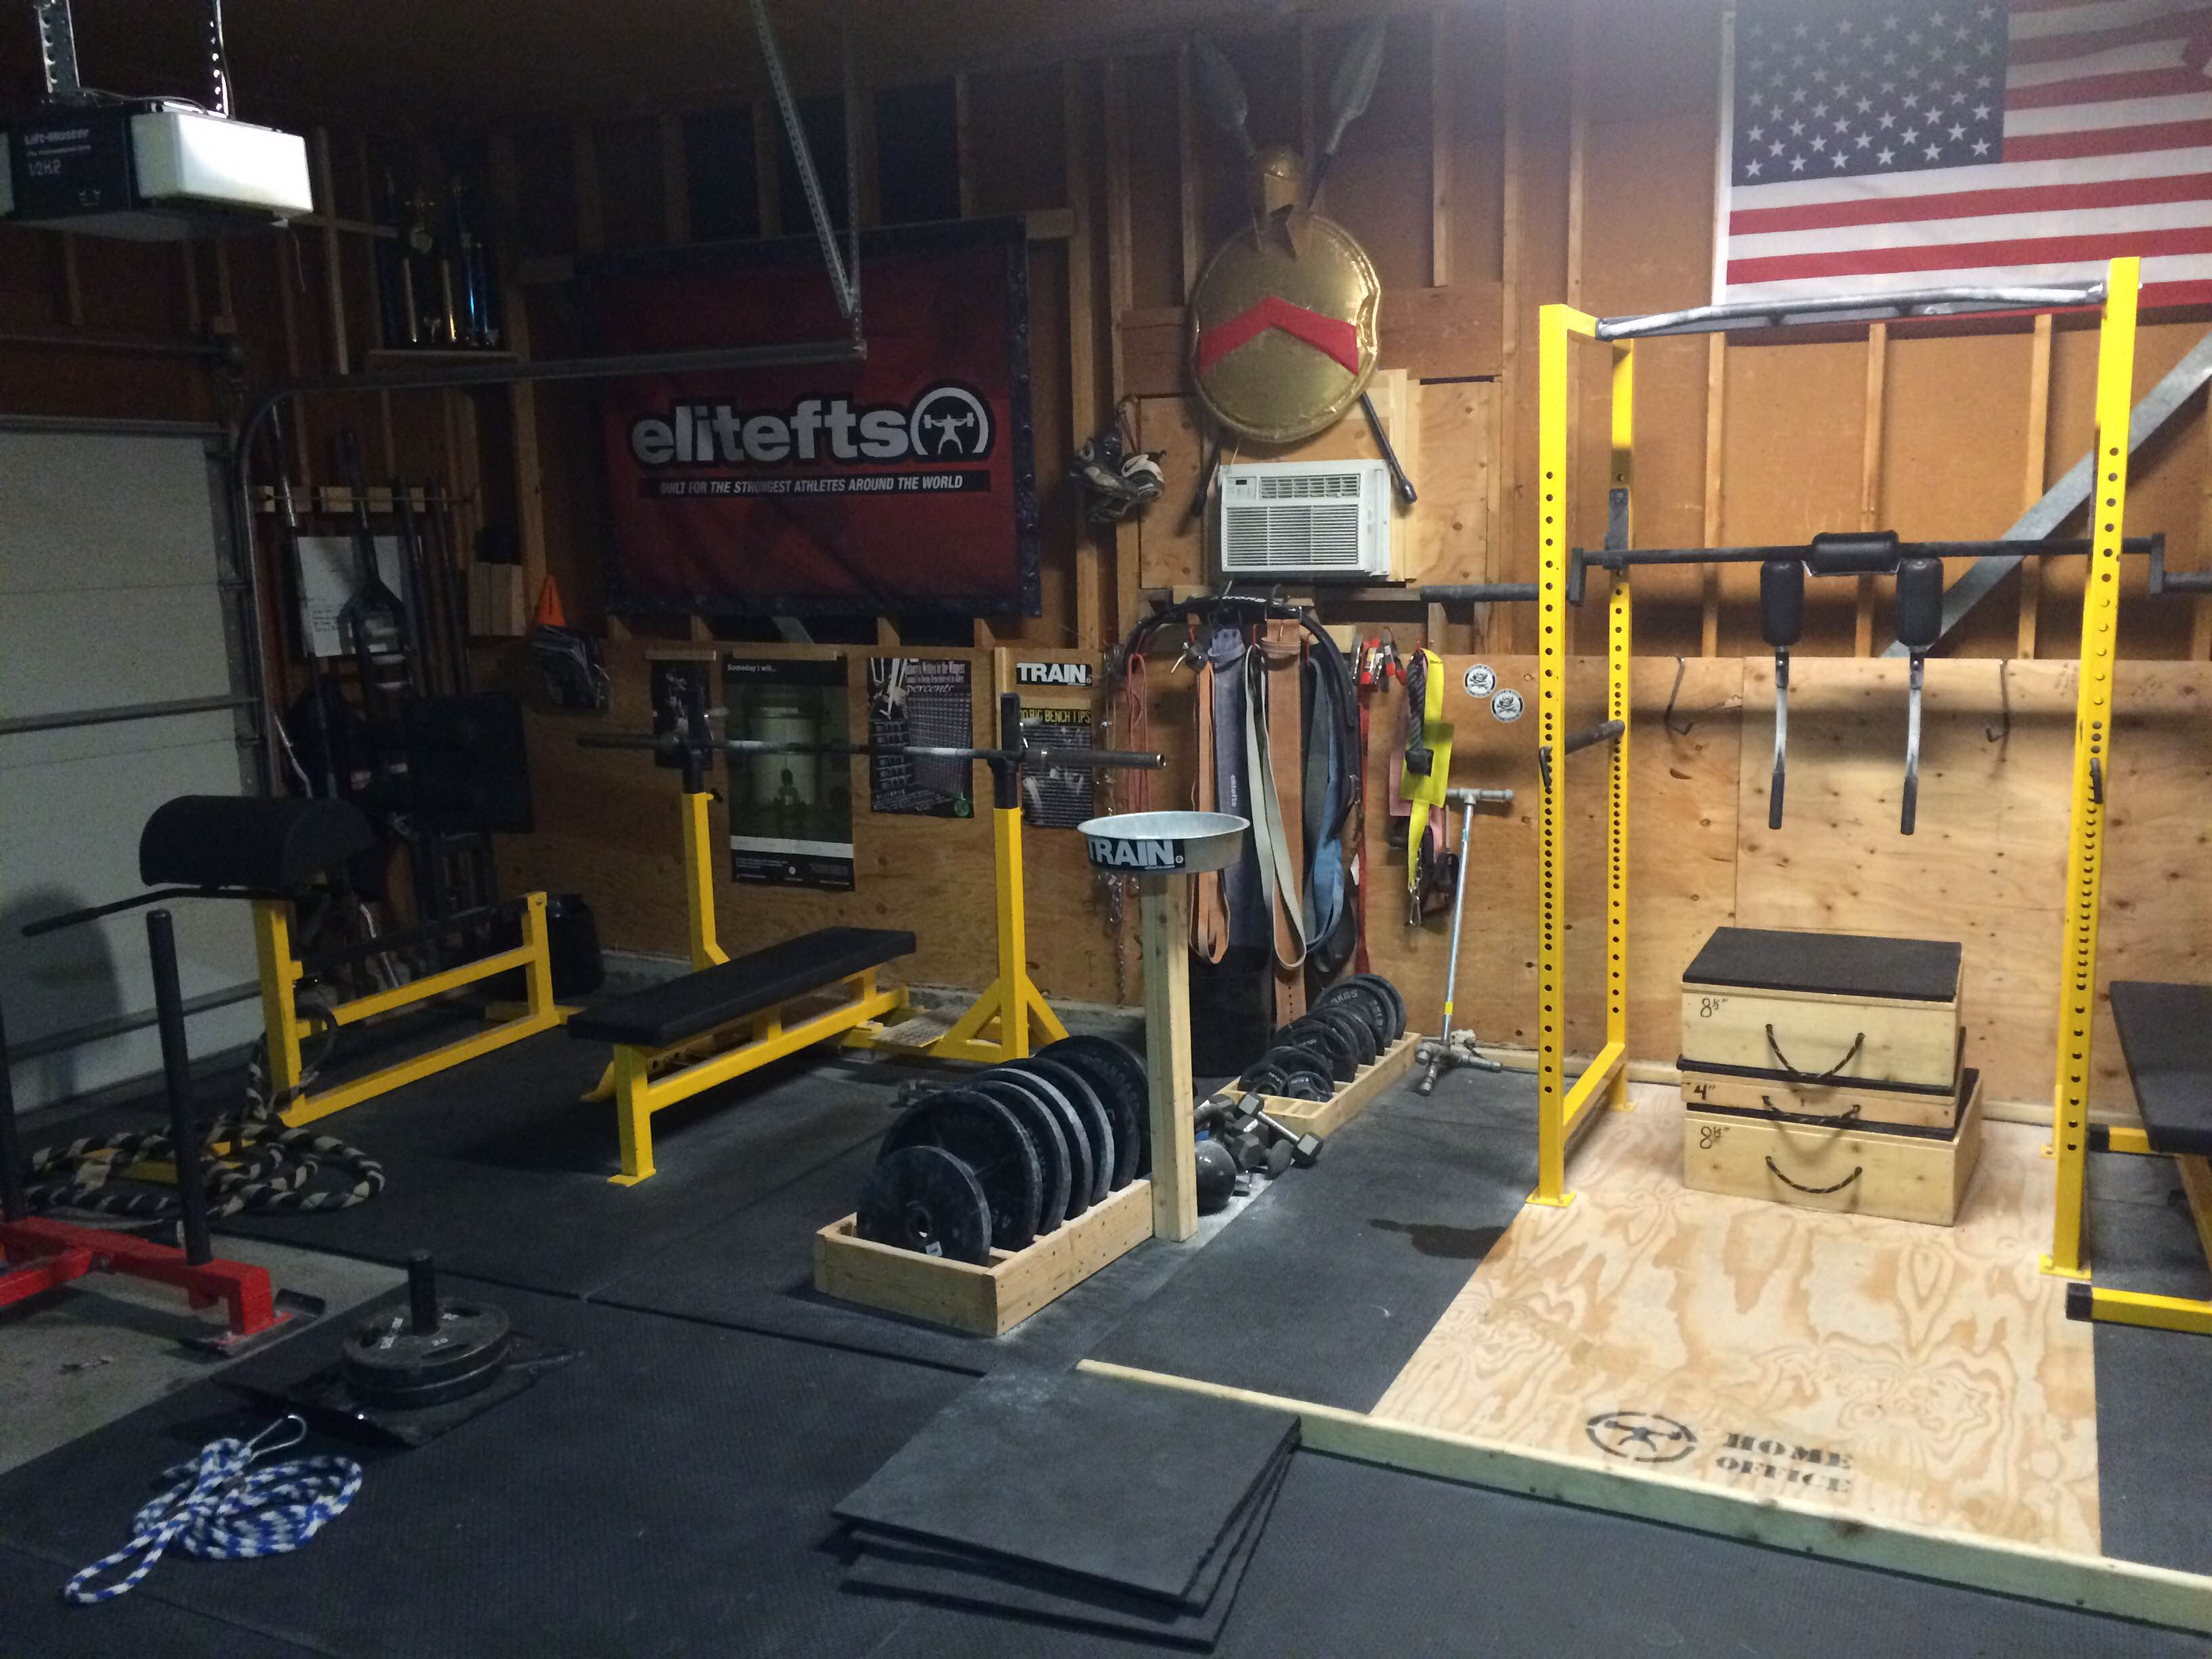 Building the executive meathead s home office elite fts